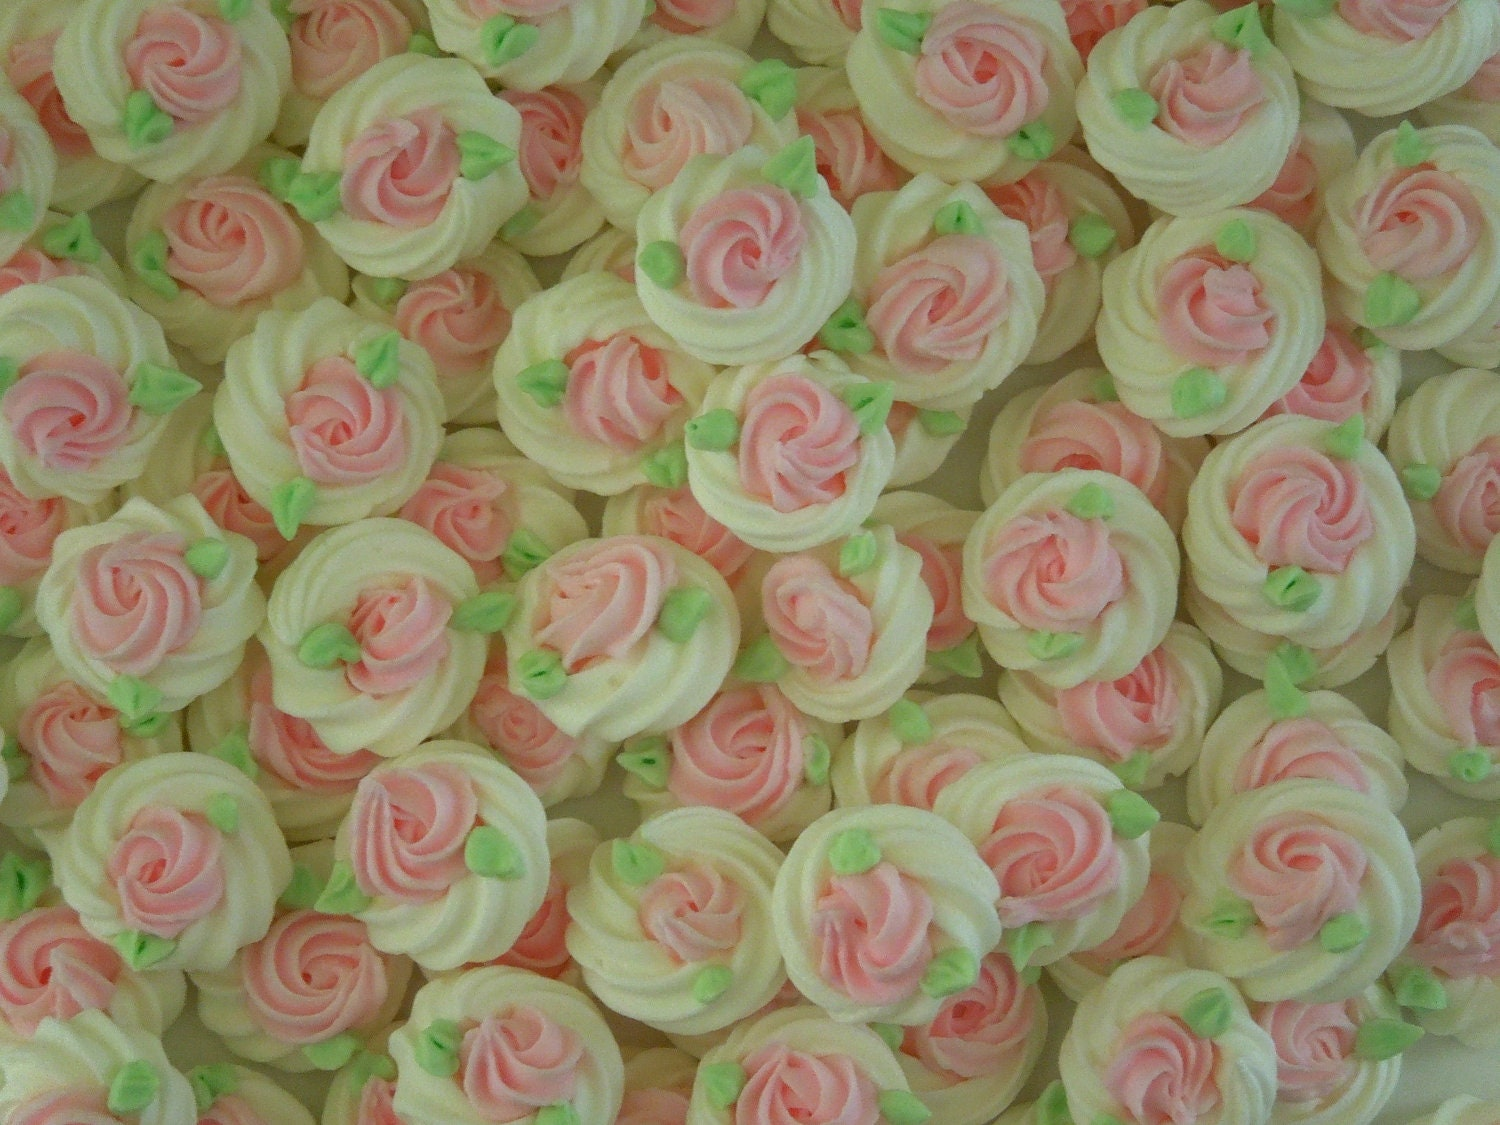 Cake Decorating Borders : Items similar to Royal Icing Borders for cake decorating ...